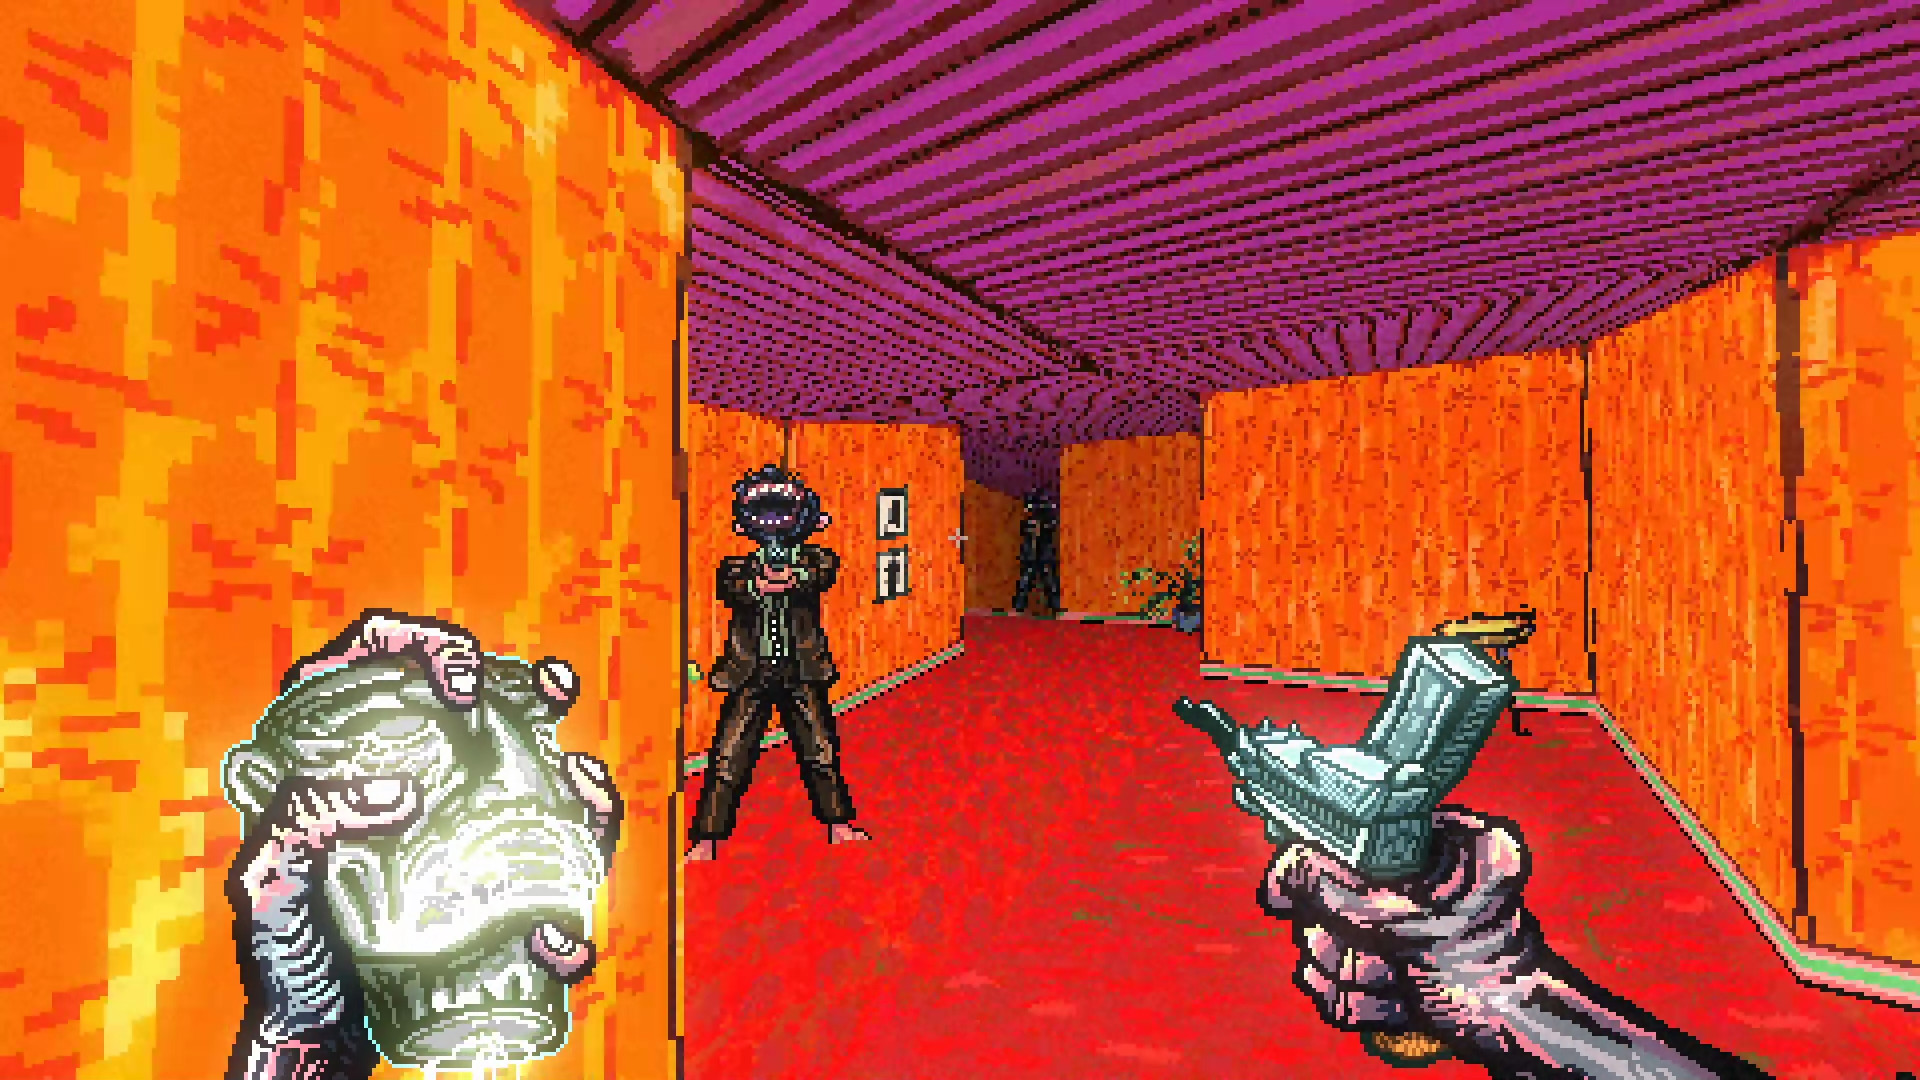 the player aims at an enemy in Post Void